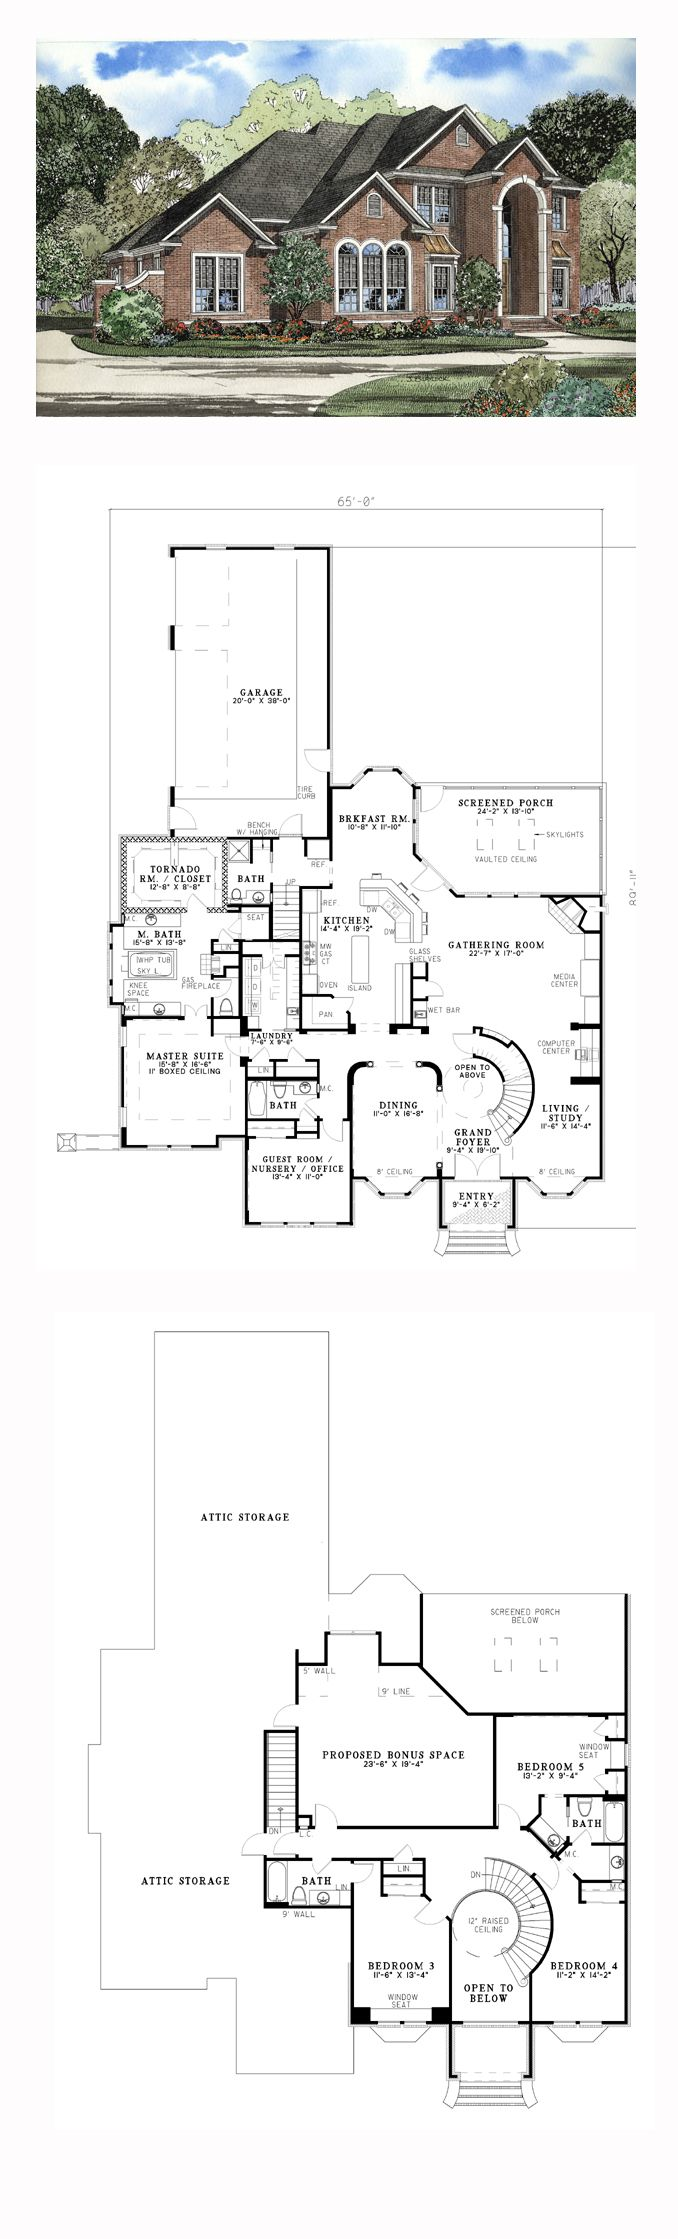 Luxury COOL House Plan ID chp 19697